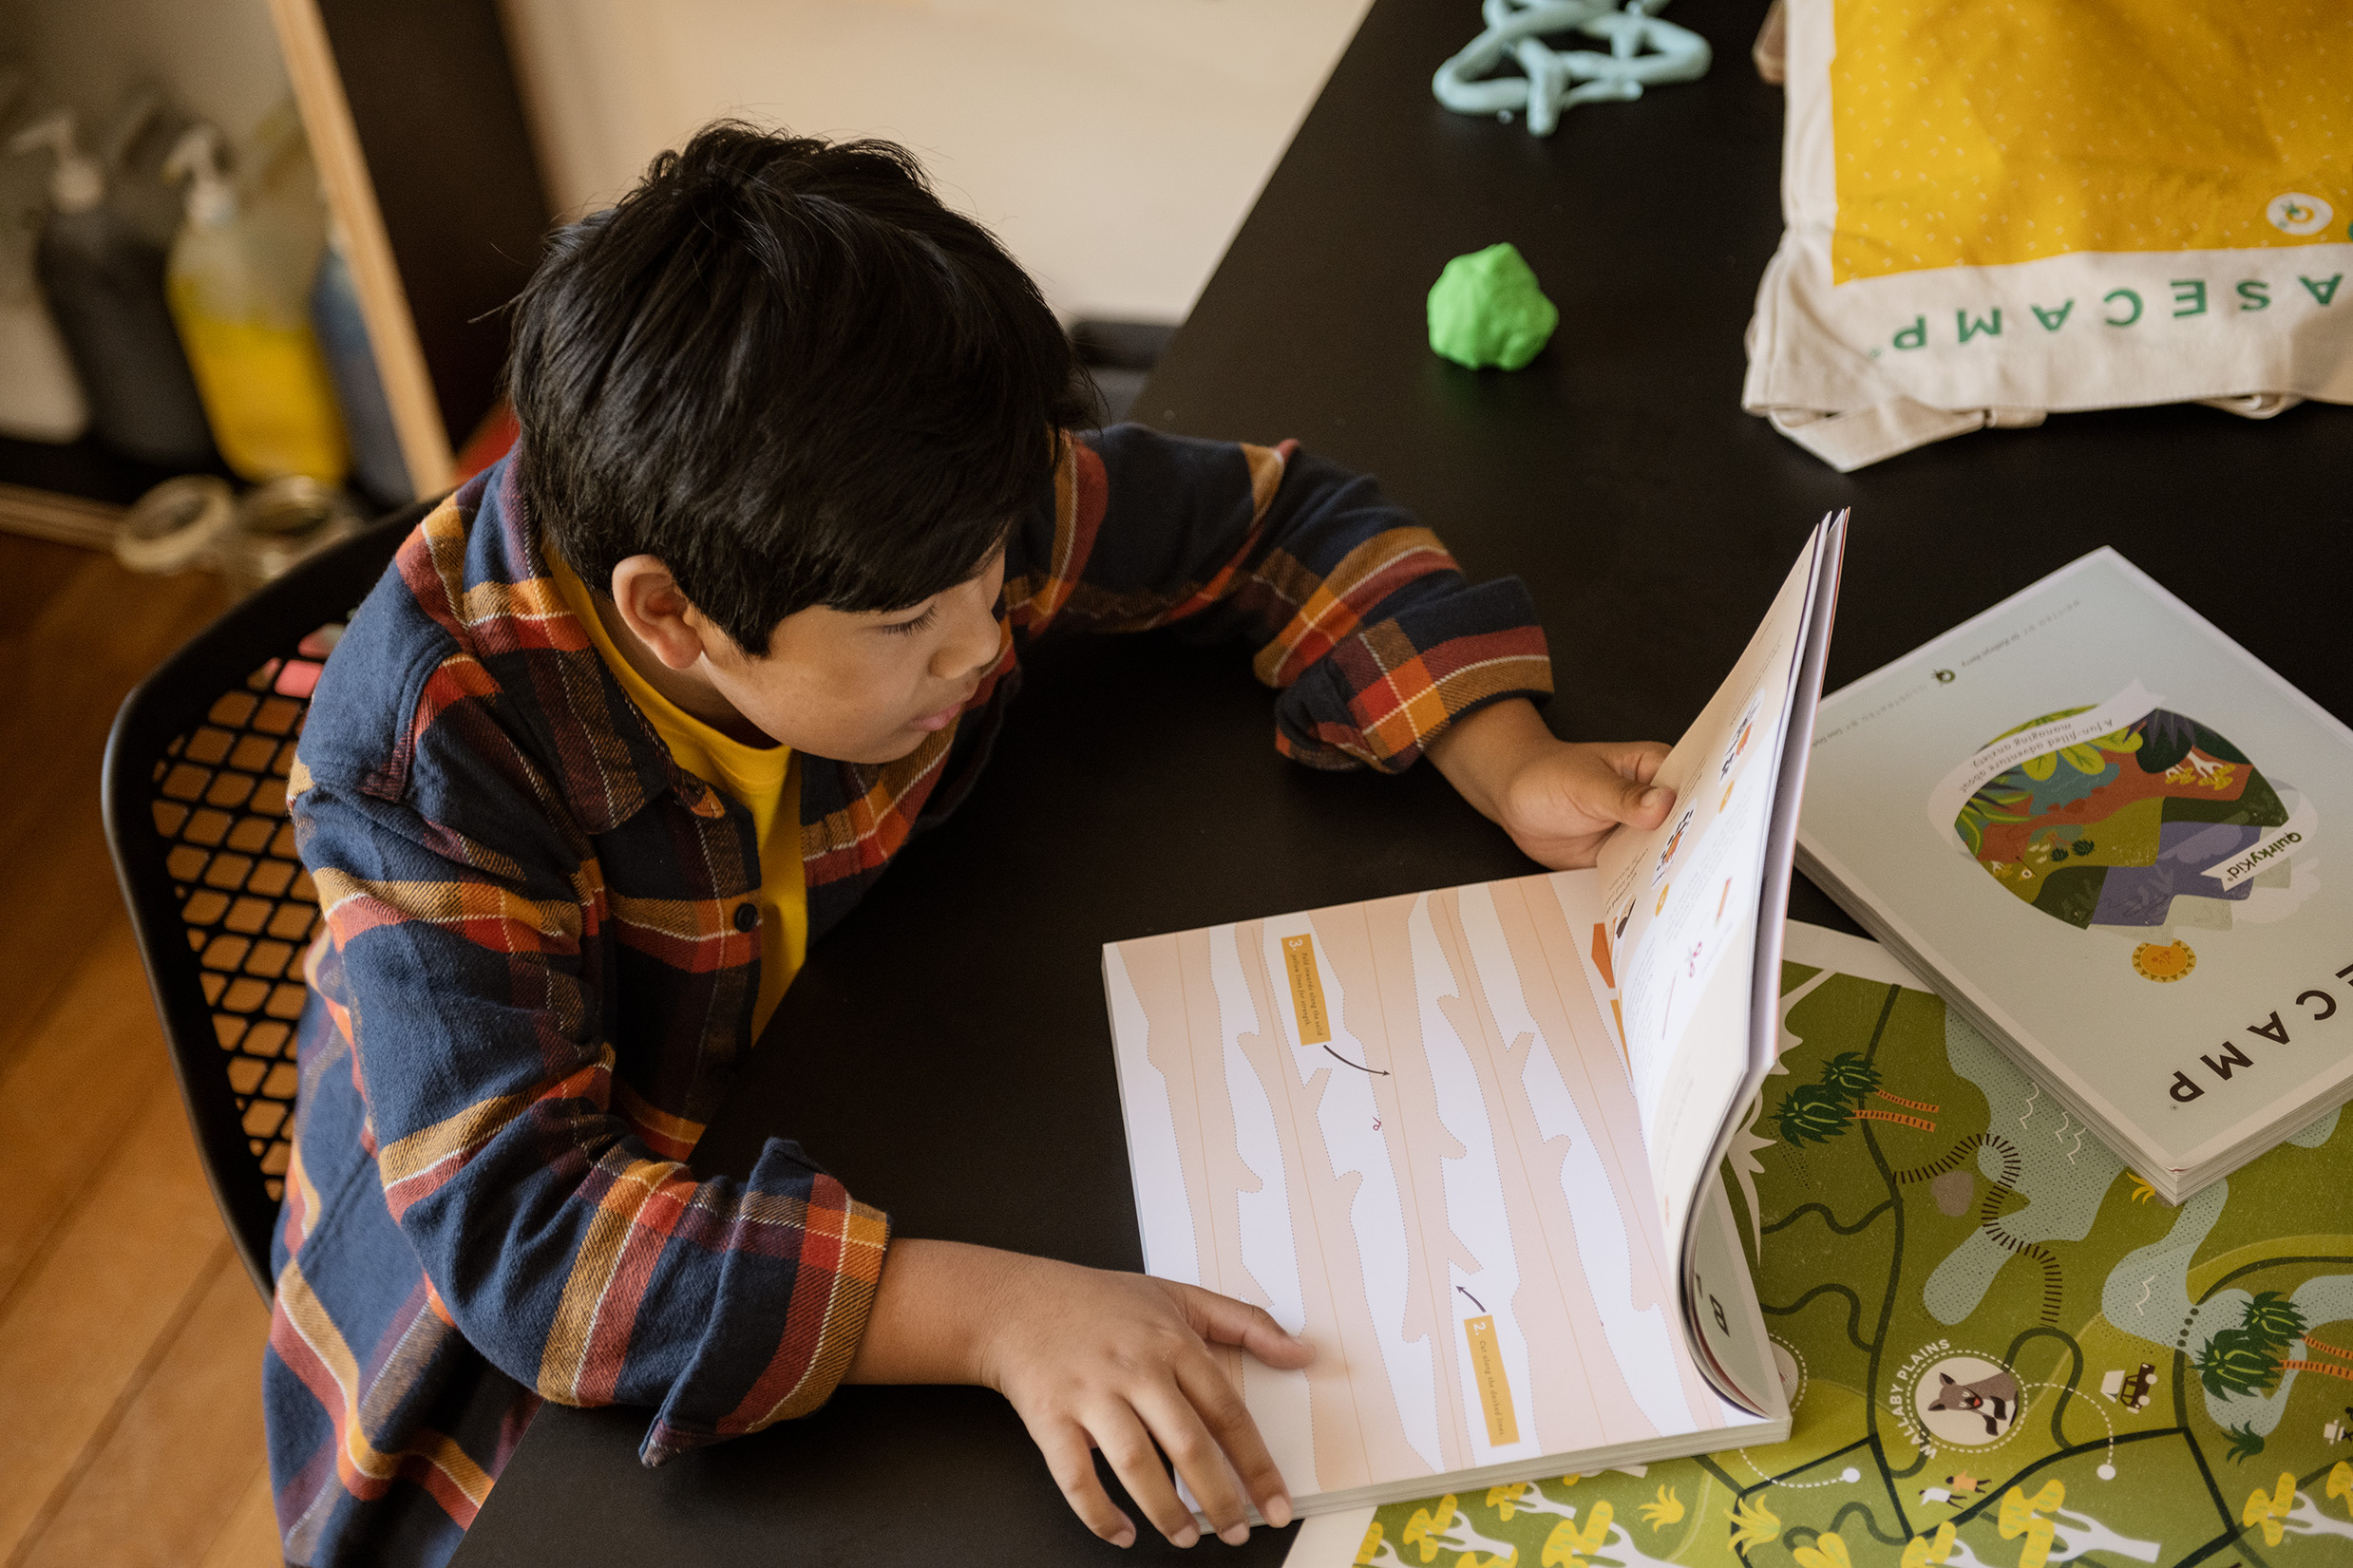 Image a a boy reading the basecamp anxiety book by quirky kid